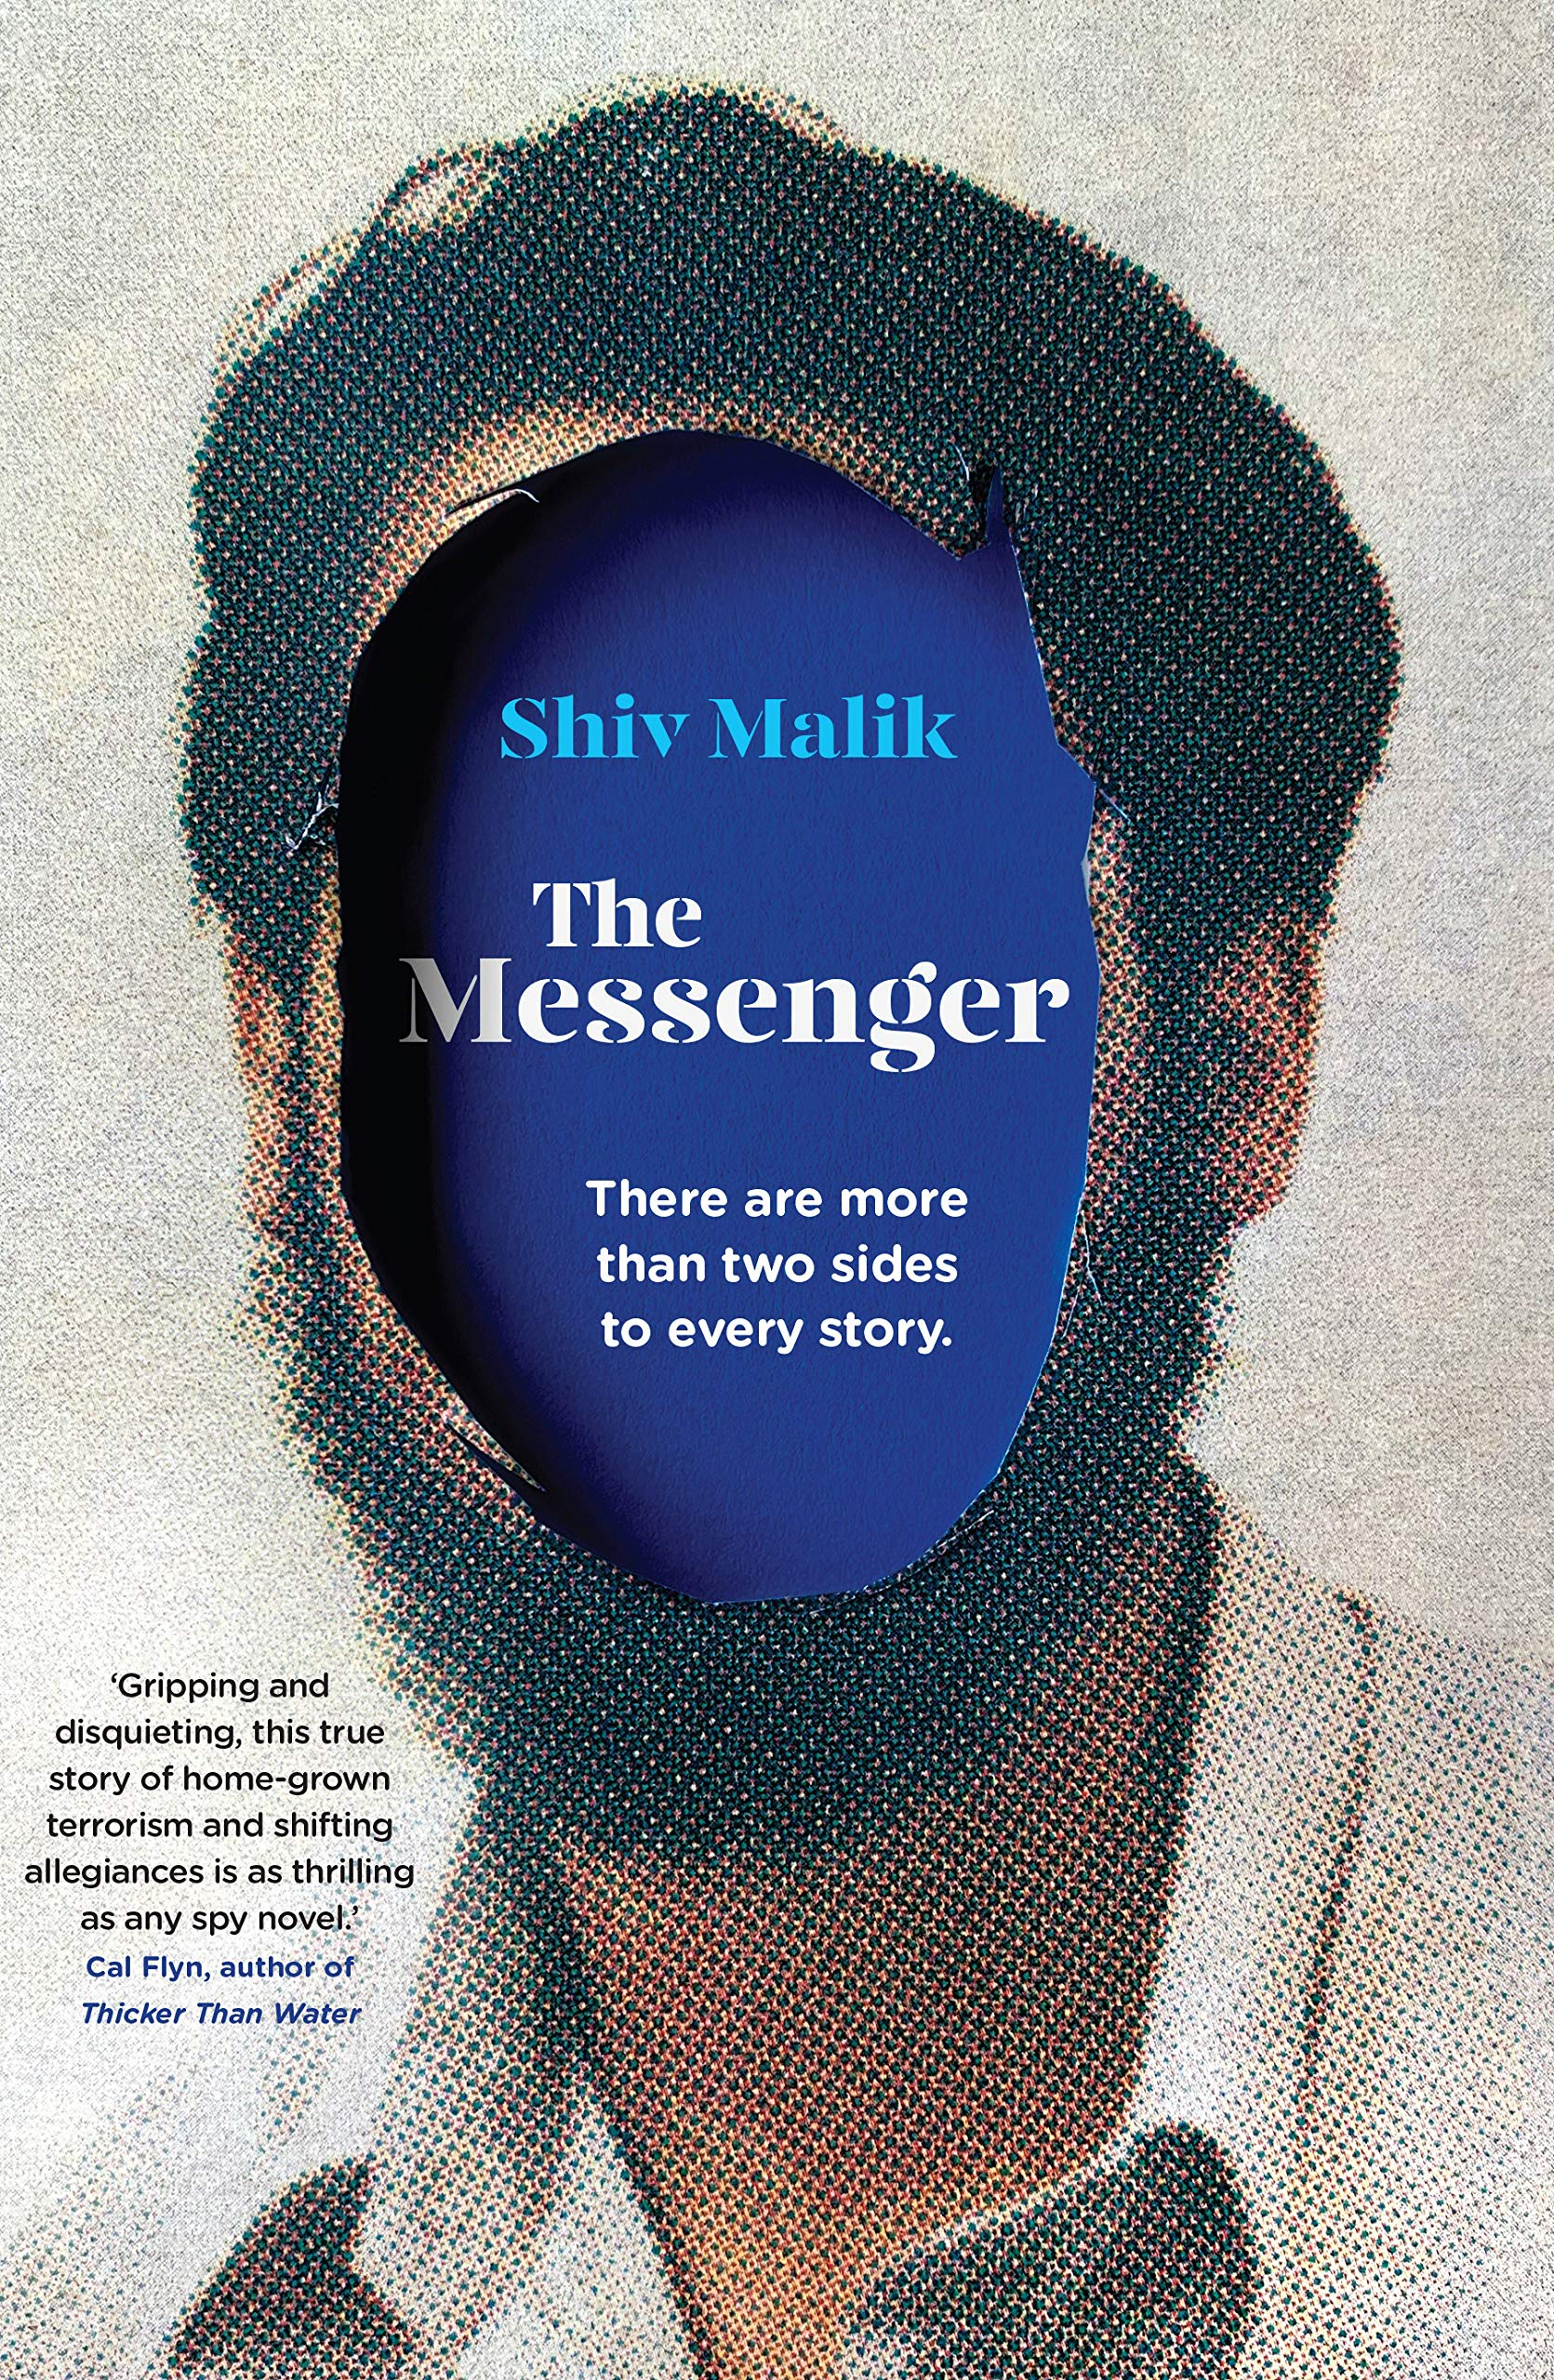 Featured Book - The Messenger by Shiv Malik (Guardian Faber Publishing, 2019)